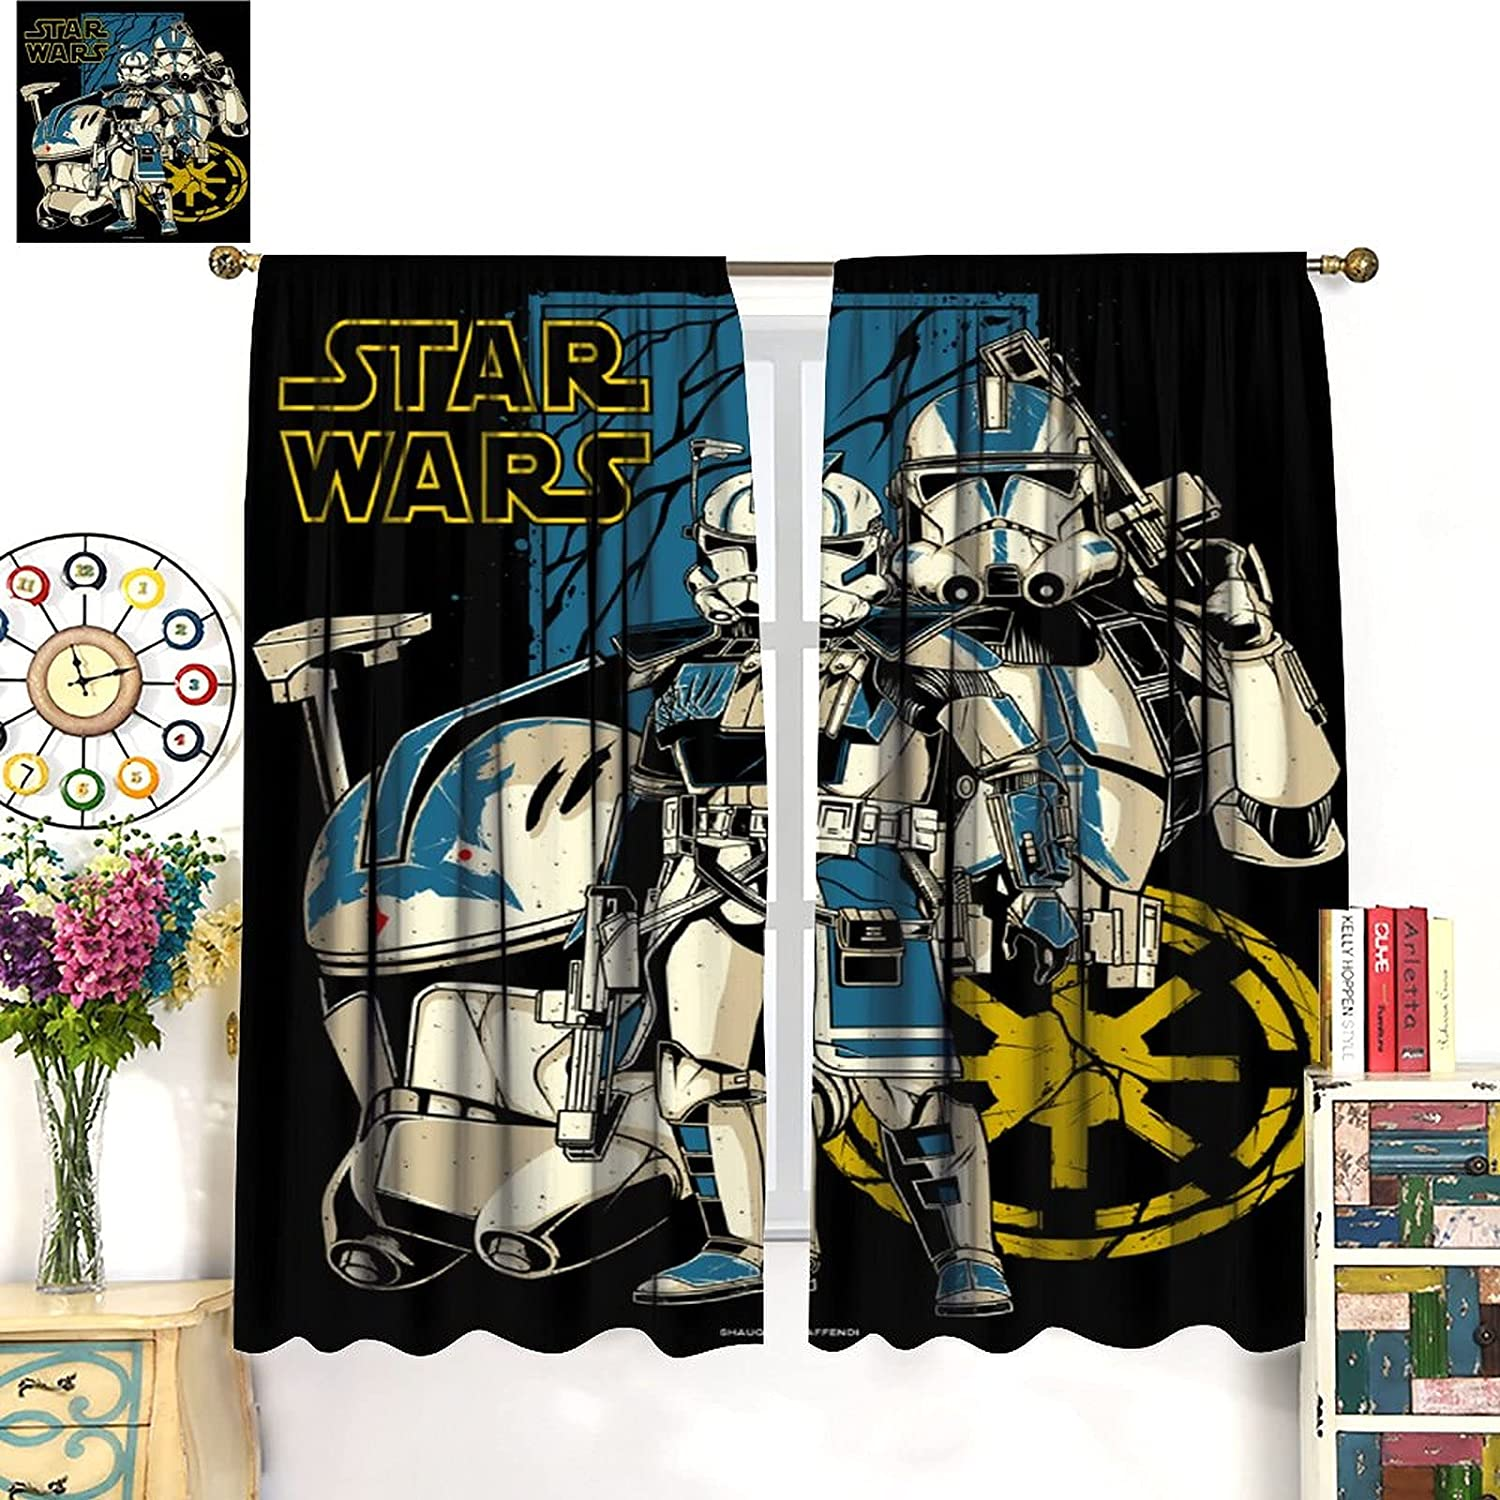 DRAGON VINES Star Wars The Clone Wars Captain Rex Clones Curtains Cartoon Children Bedroom CurtainsArt Decoration Curtains for Bedroom, Club, Living Room 42x63inch(107x160cm)